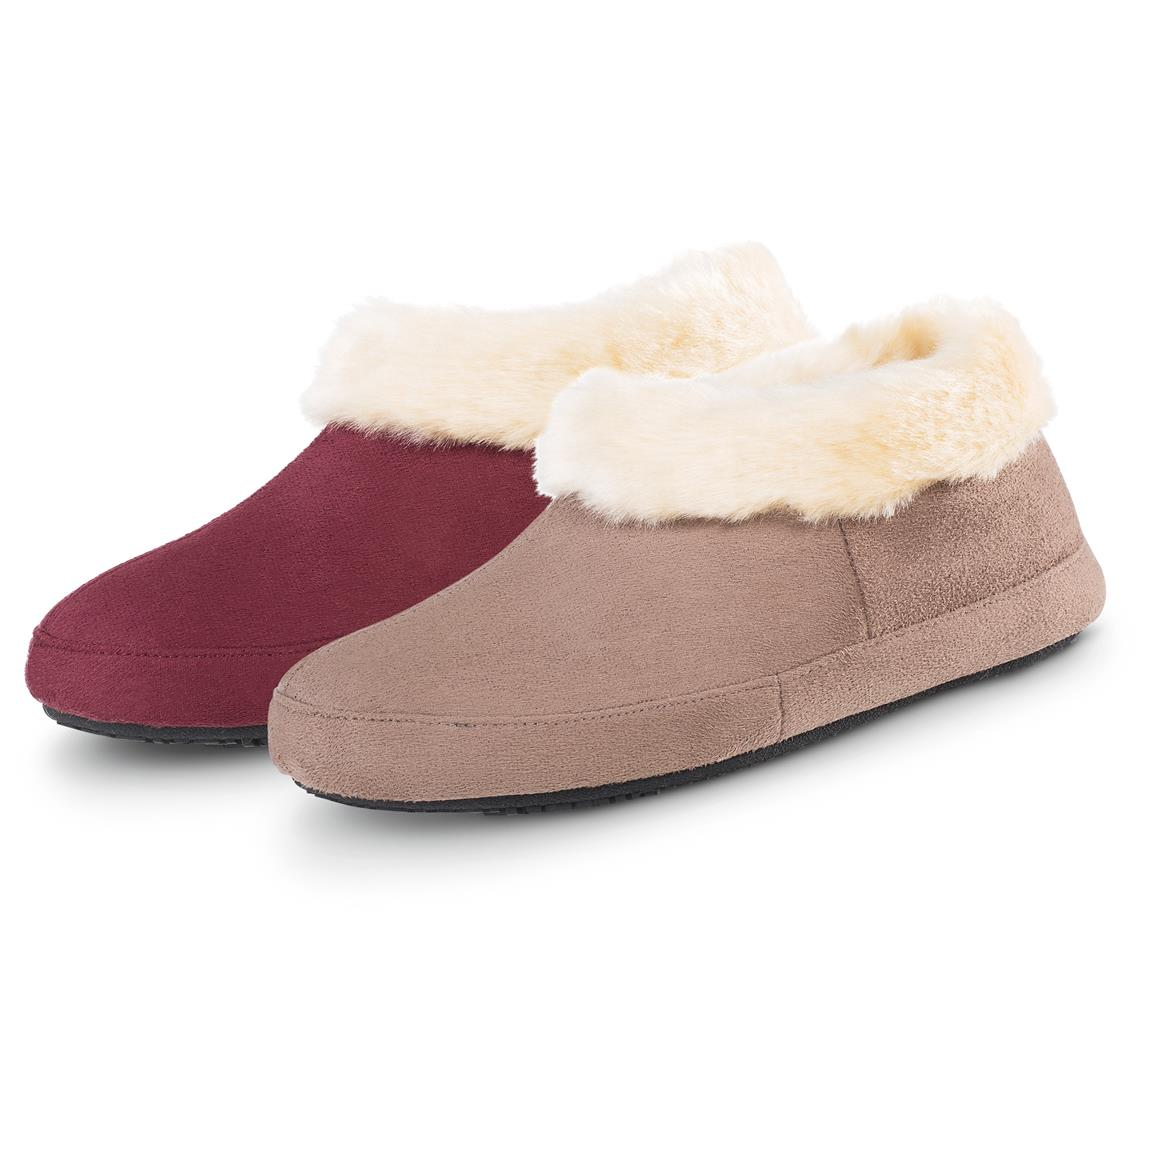 Woodlands Women's Erica Low Bootie Slippers